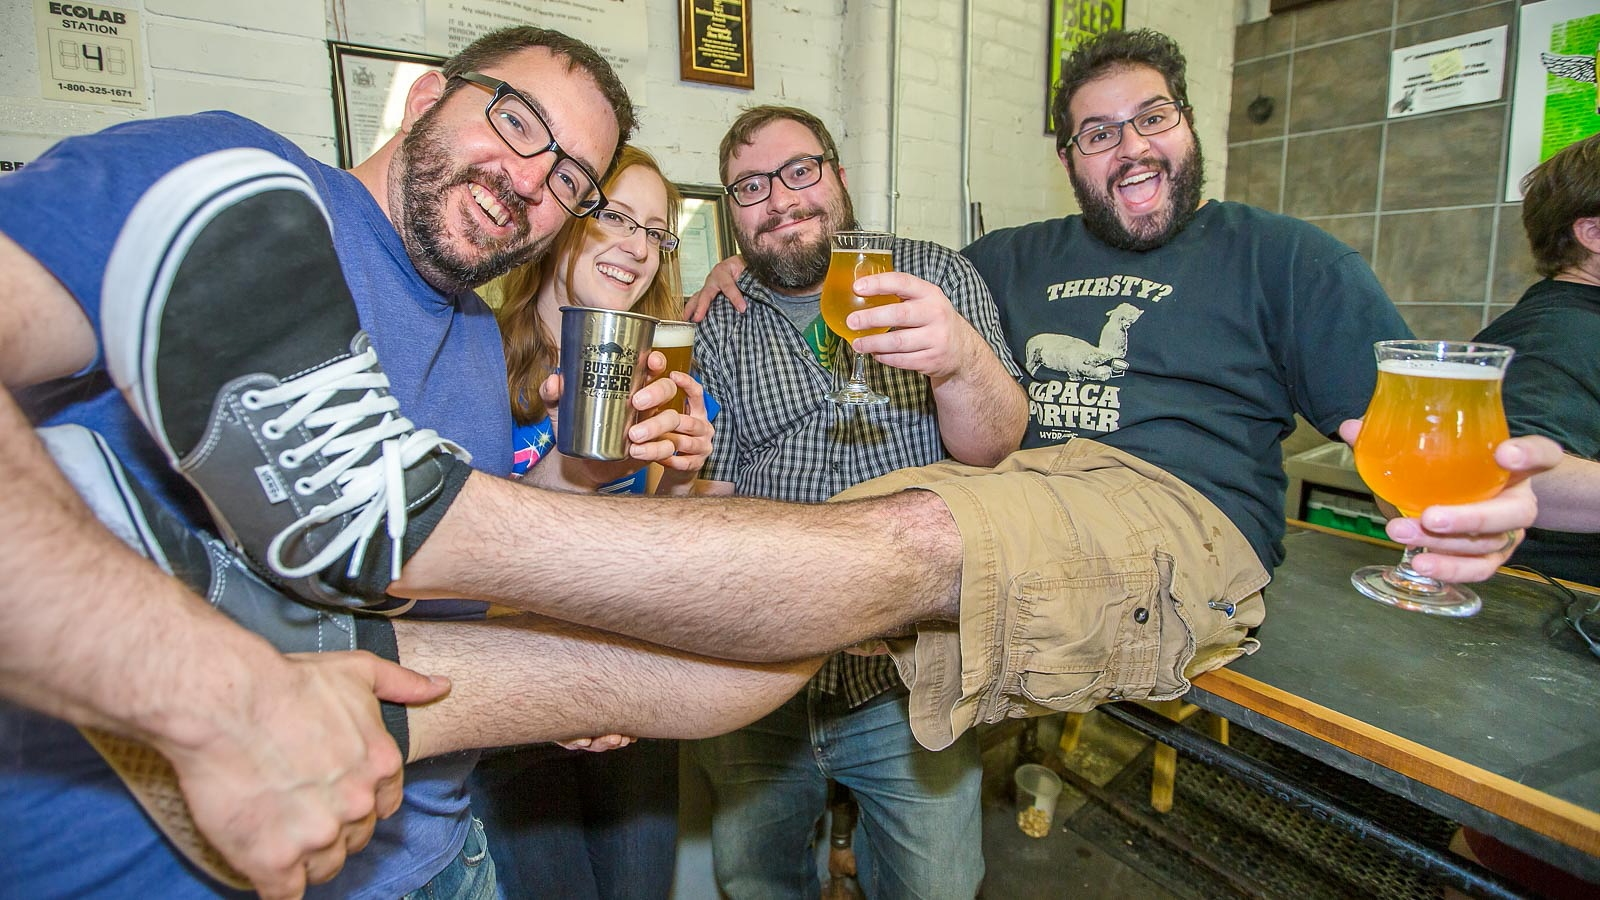 Smiles and beer were abundant at Community Beer Works' fourth anniversary party in April. (Don Nieman/Special to The News)